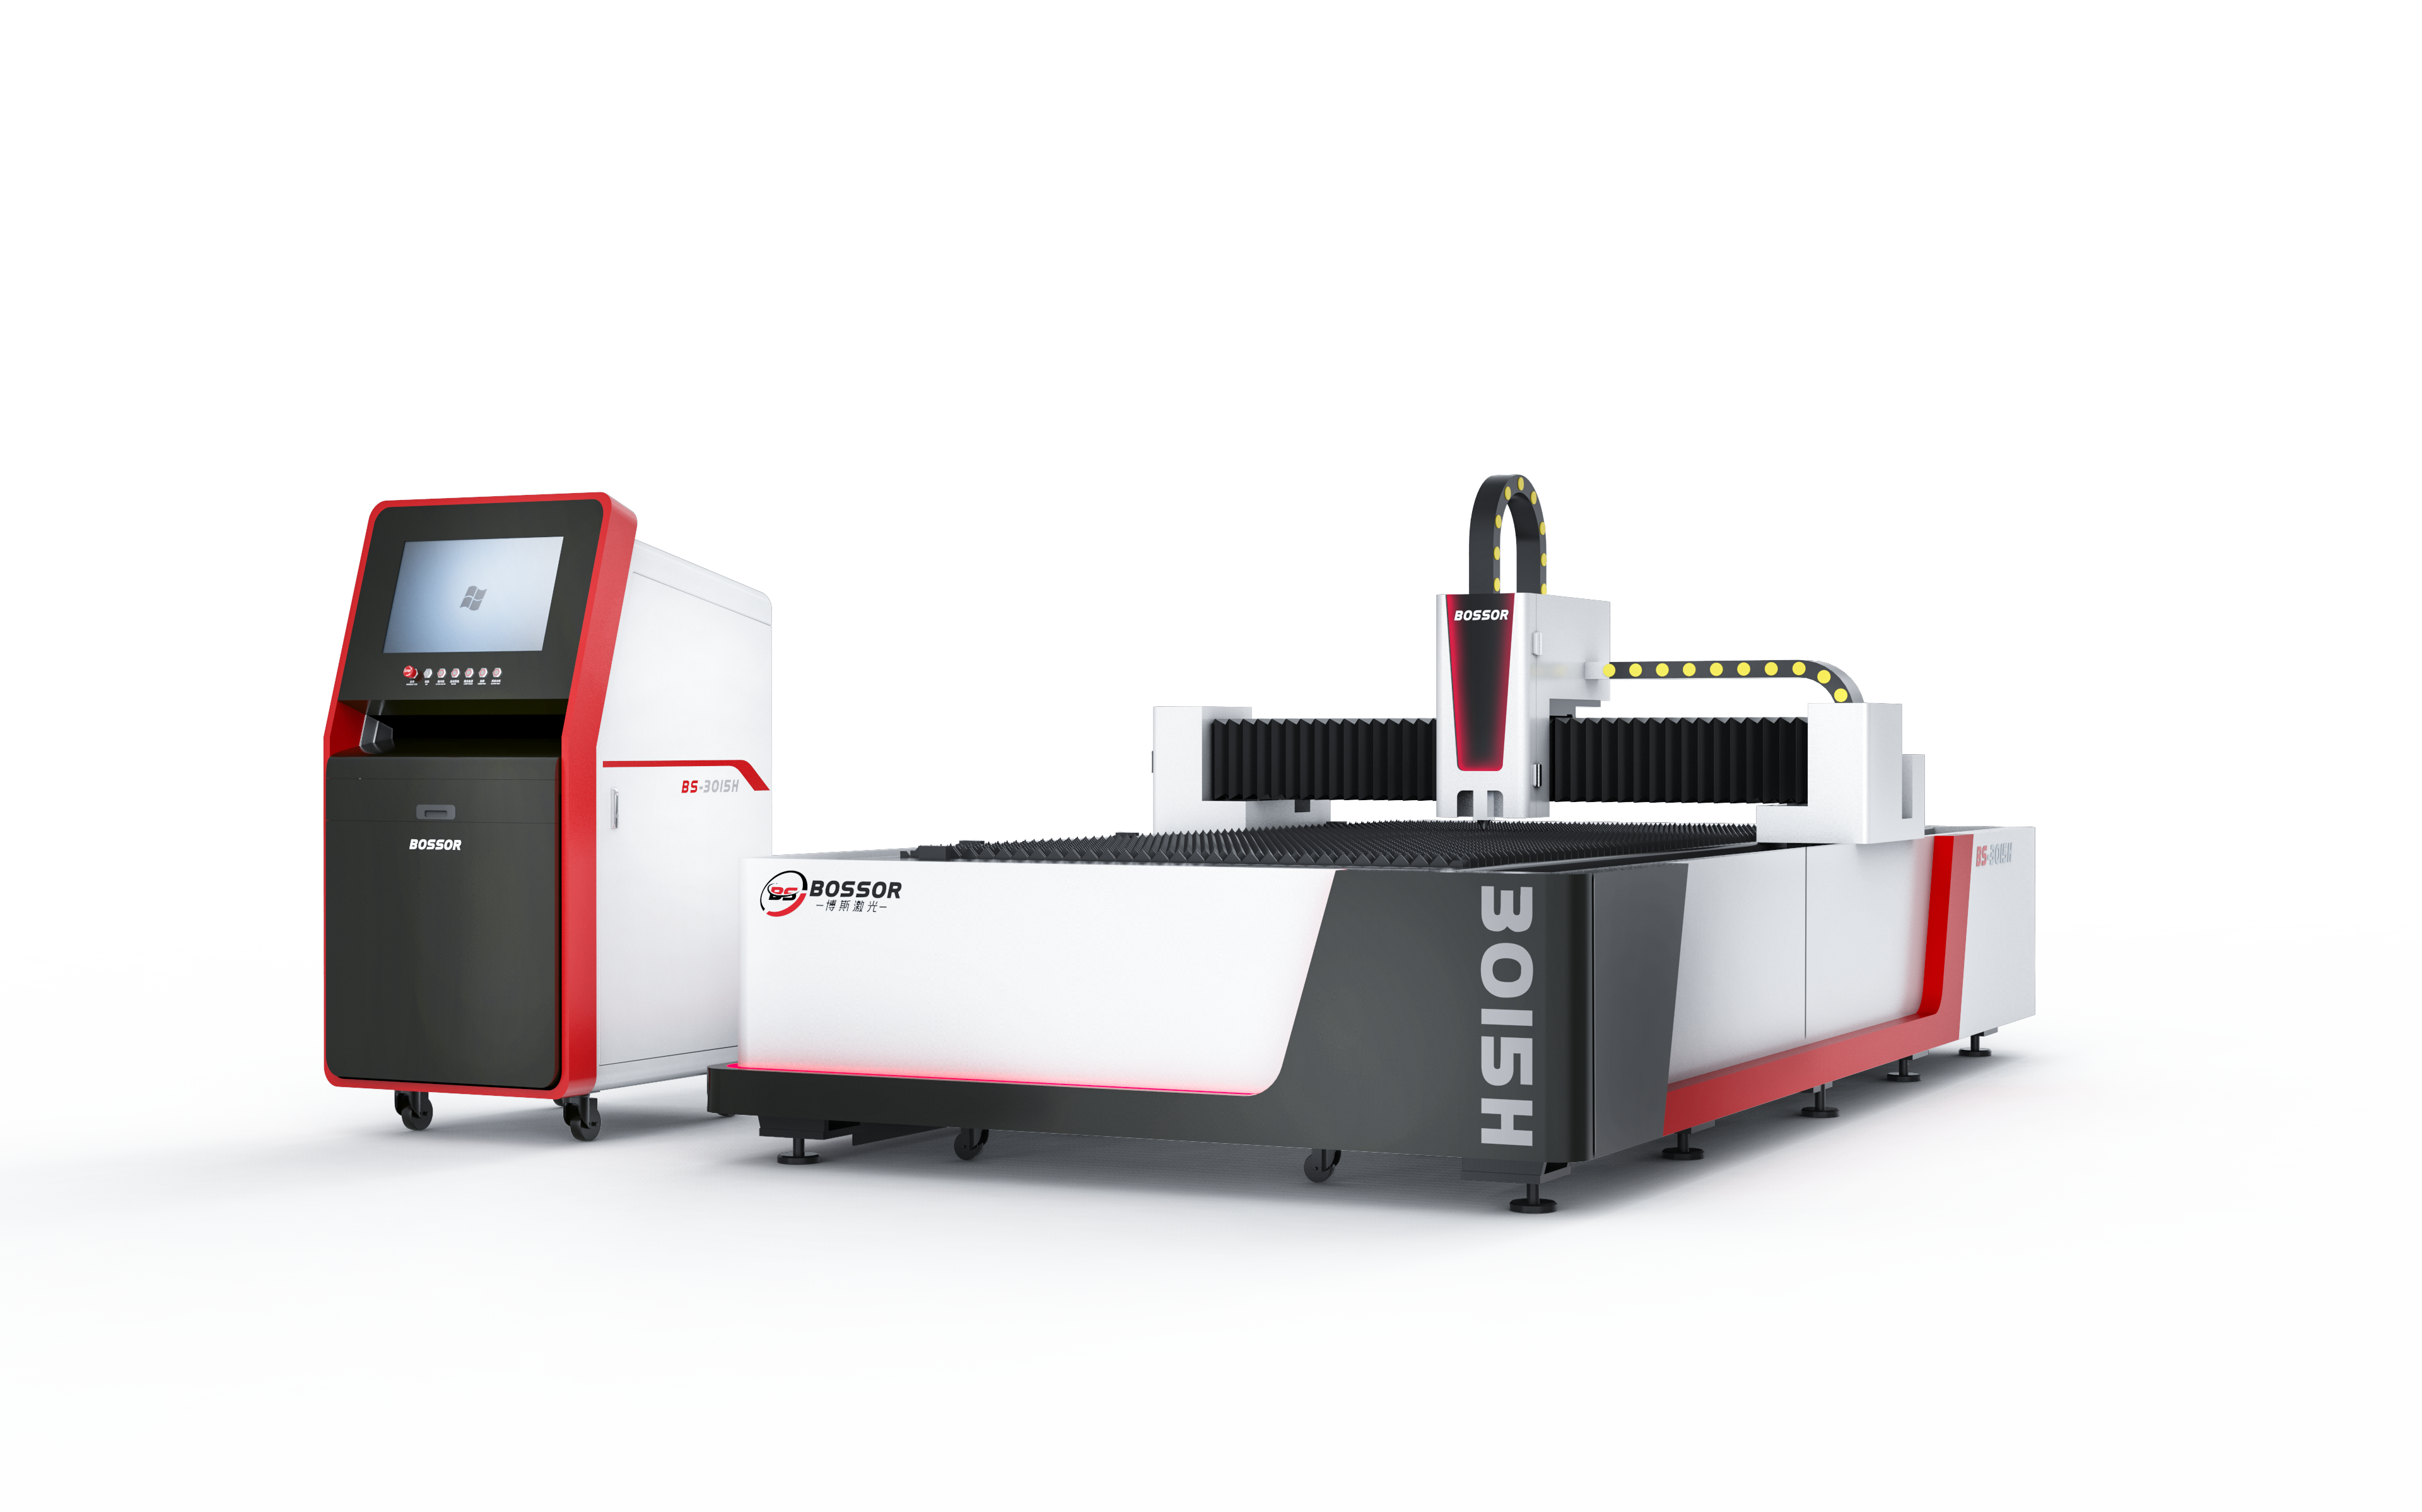 3KW Fiber Laser Cutting Machine